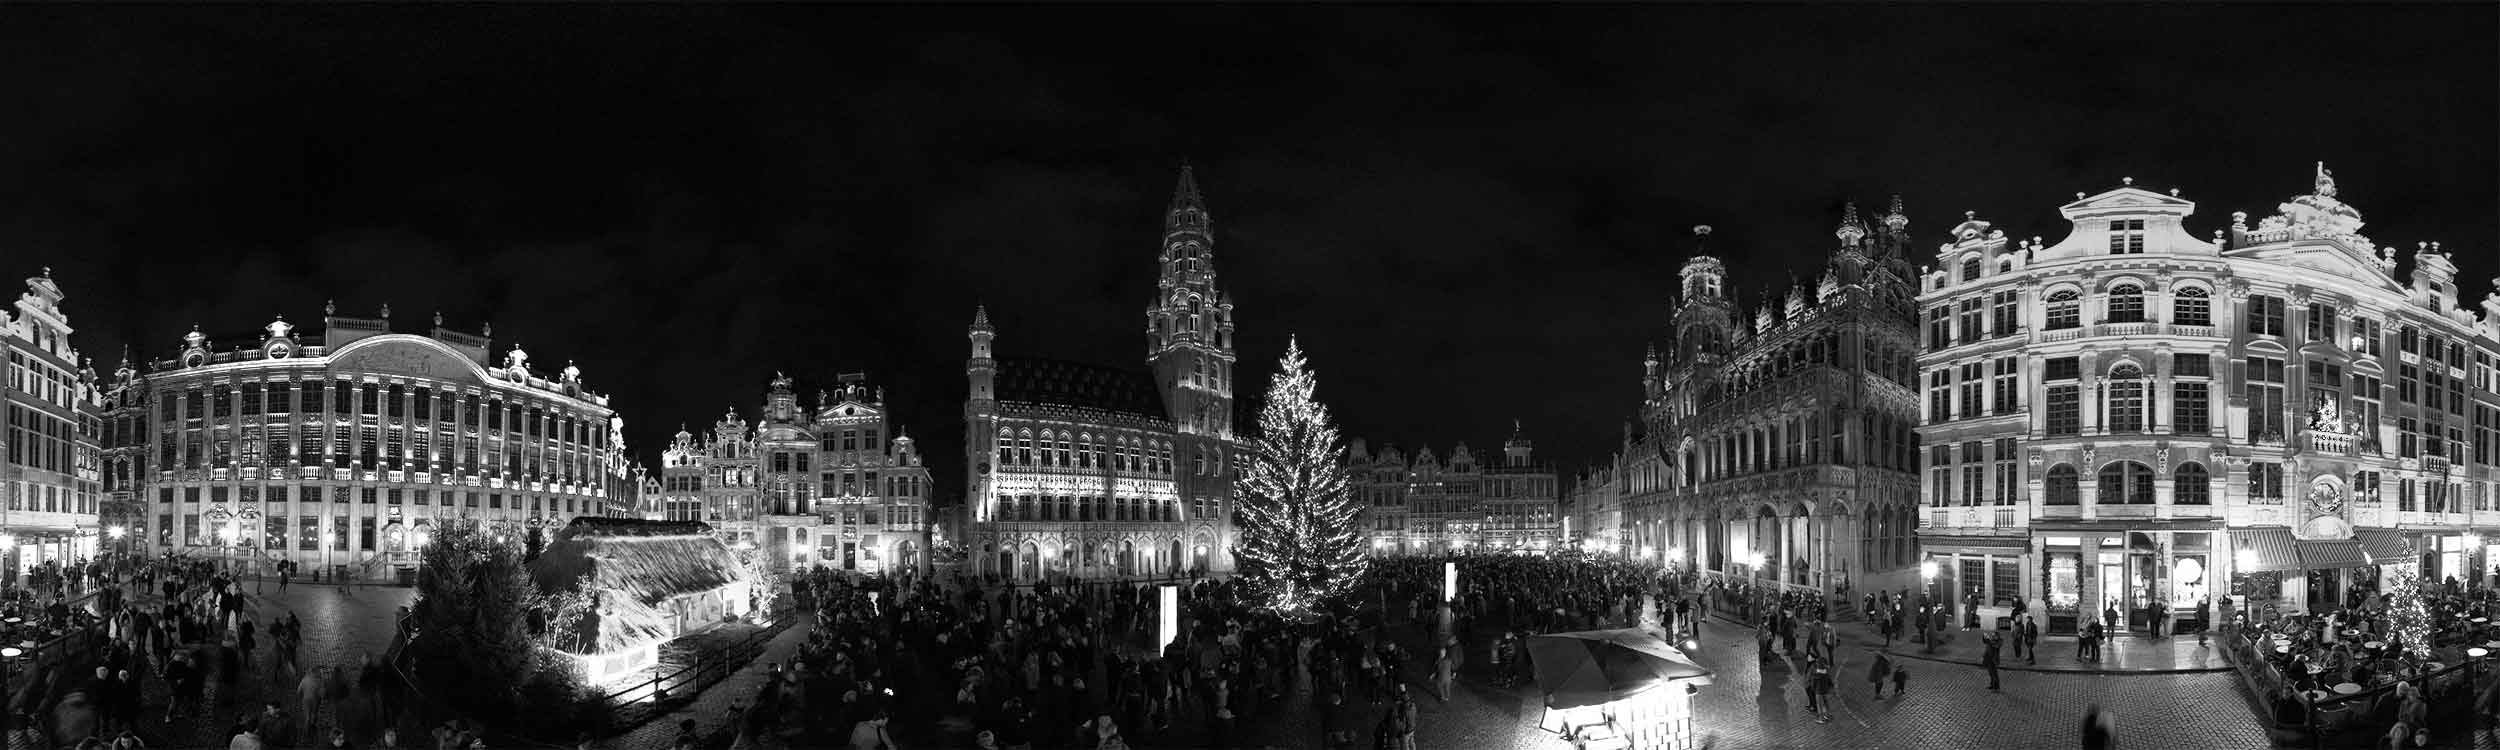 Grand place Bruxelles visite virtuelle nouvel an 360 black and white